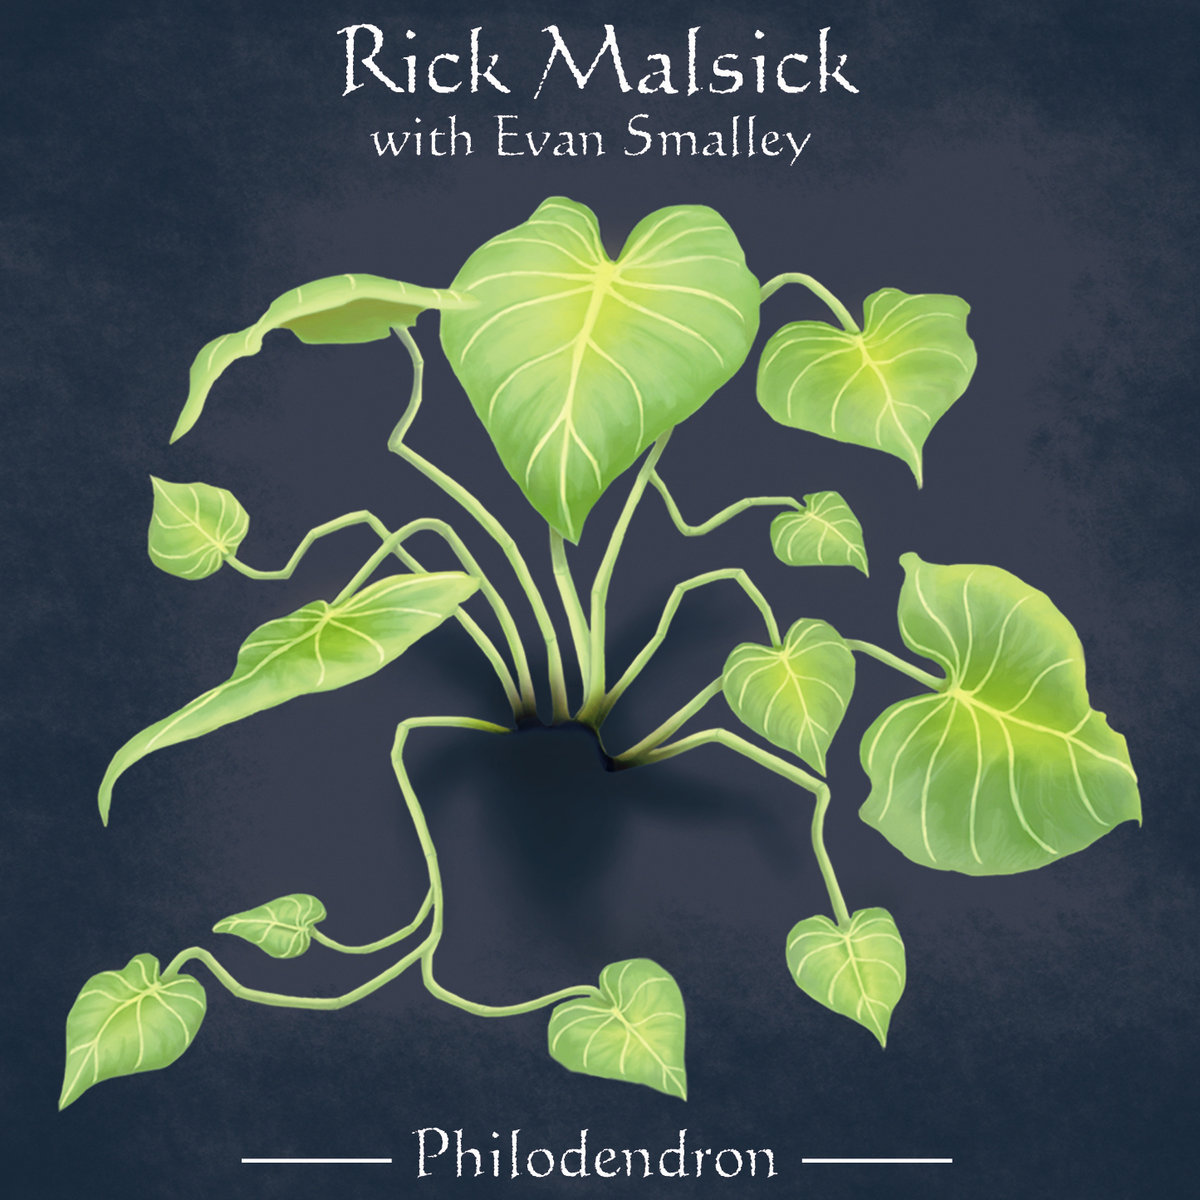 Rick Malsick with Evan Smalley- Philodendron